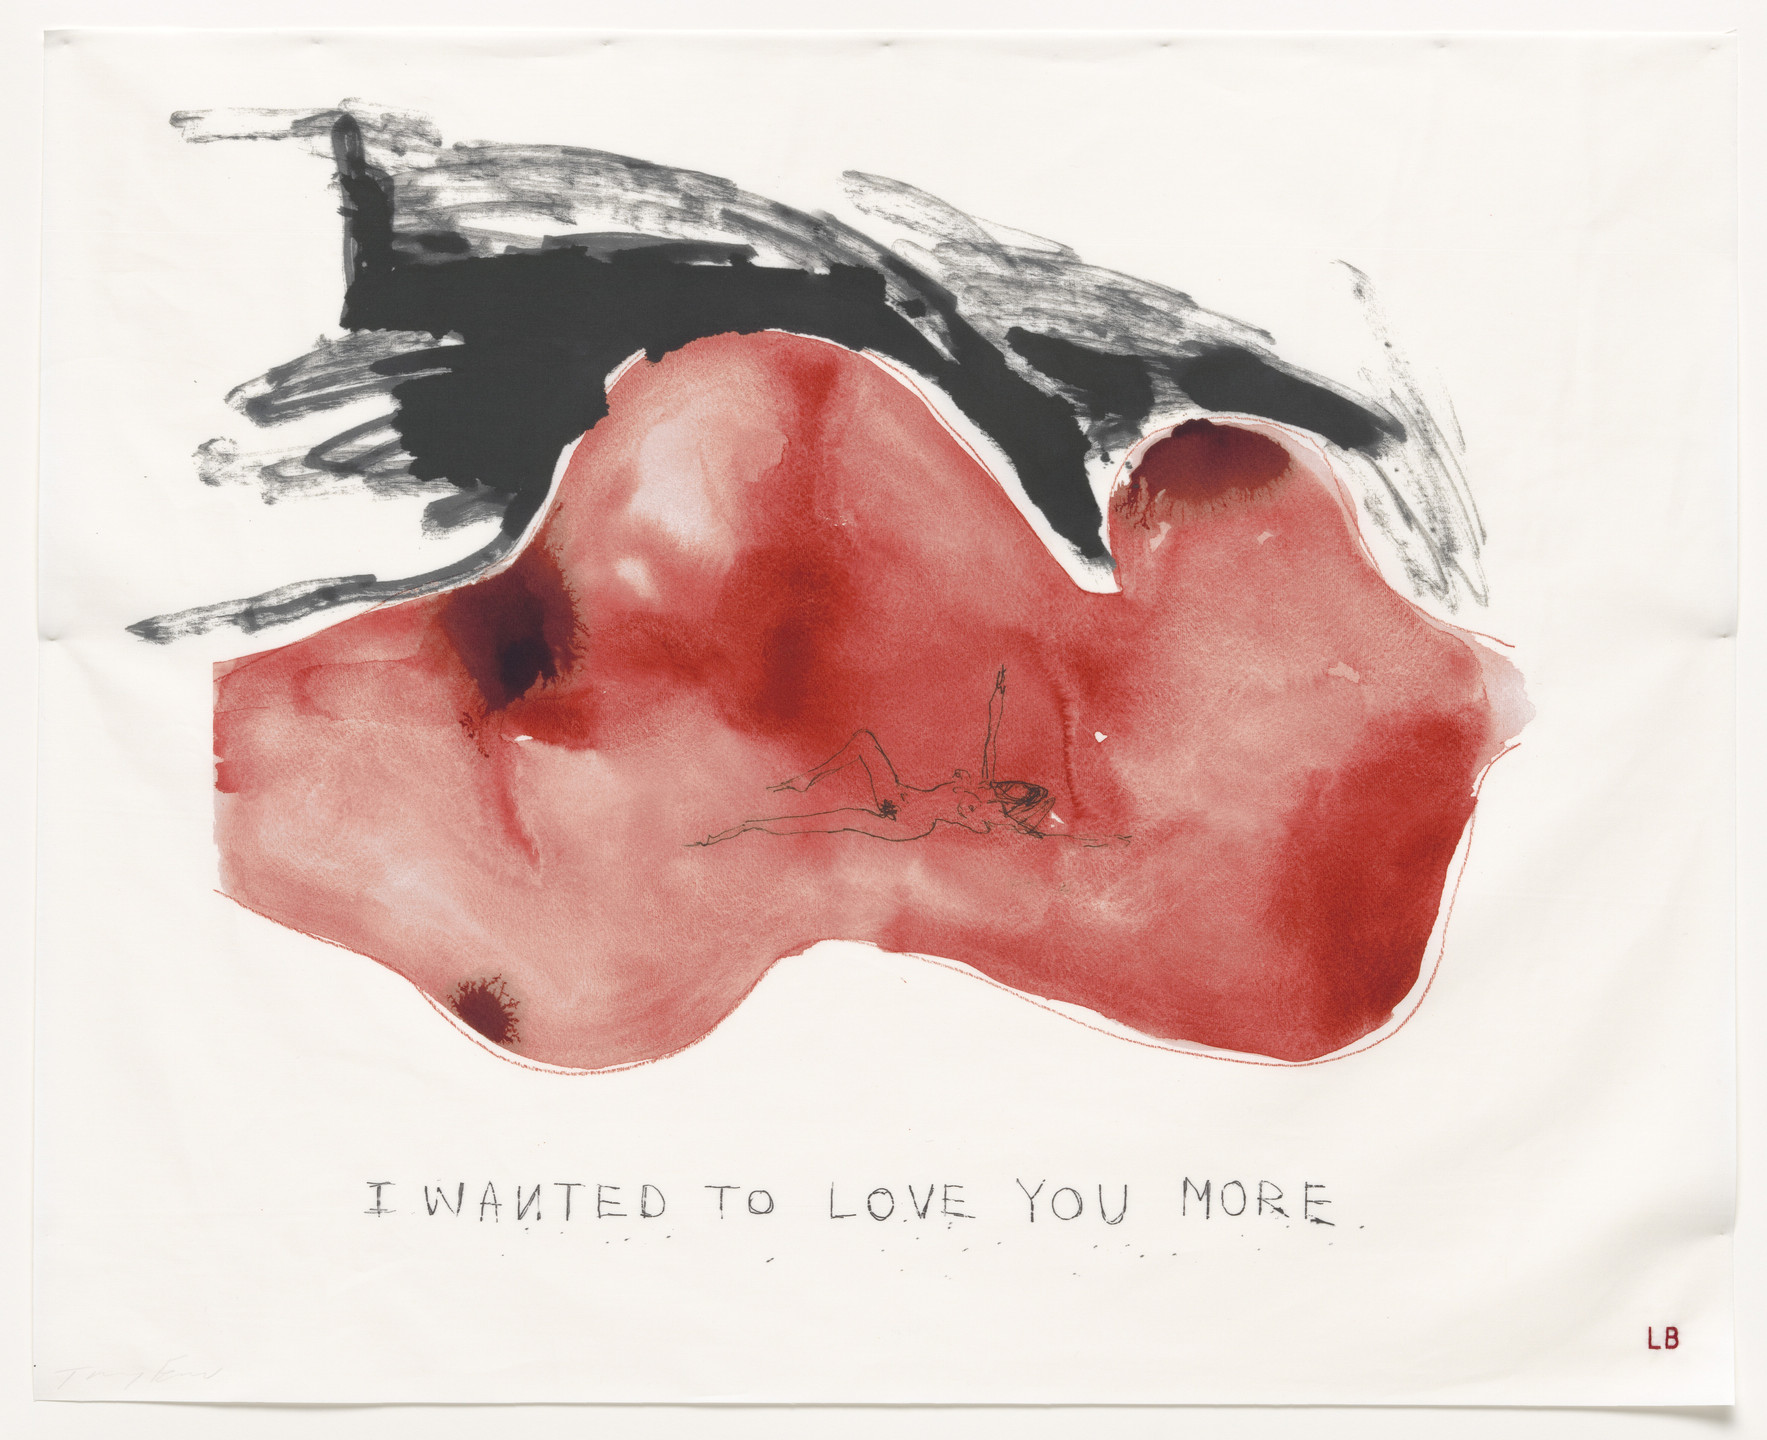 Louise Bourgeois, Tracey Emin. I Wanted to Love You More, no. 1 of 16, from the series, Do Not Abandon Me. 2009-2010